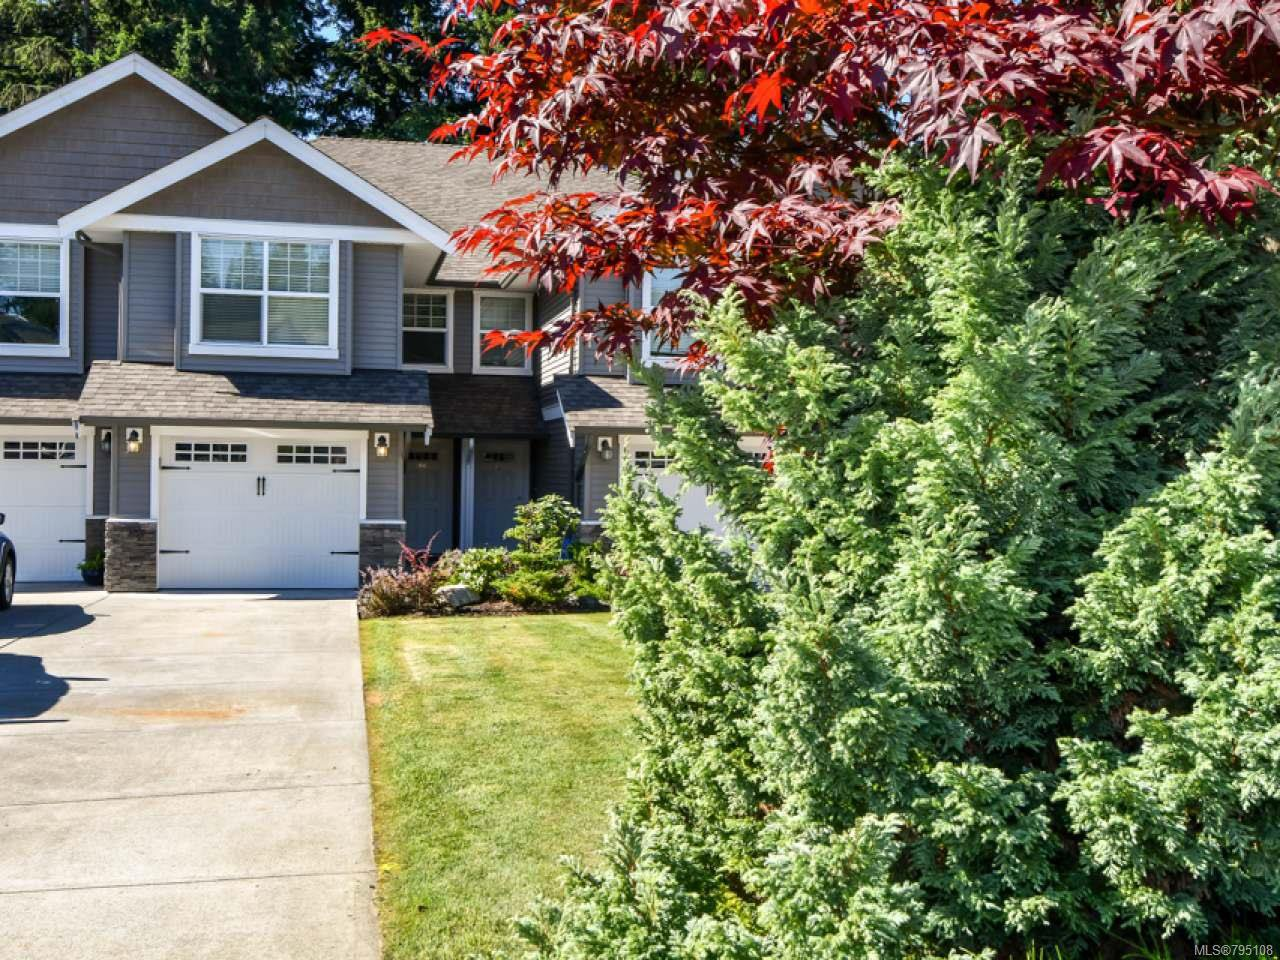 Main Photo: 7 1330 Creekside Way in CAMPBELL RIVER: CR Willow Point Half Duplex for sale (Campbell River)  : MLS®# 795108